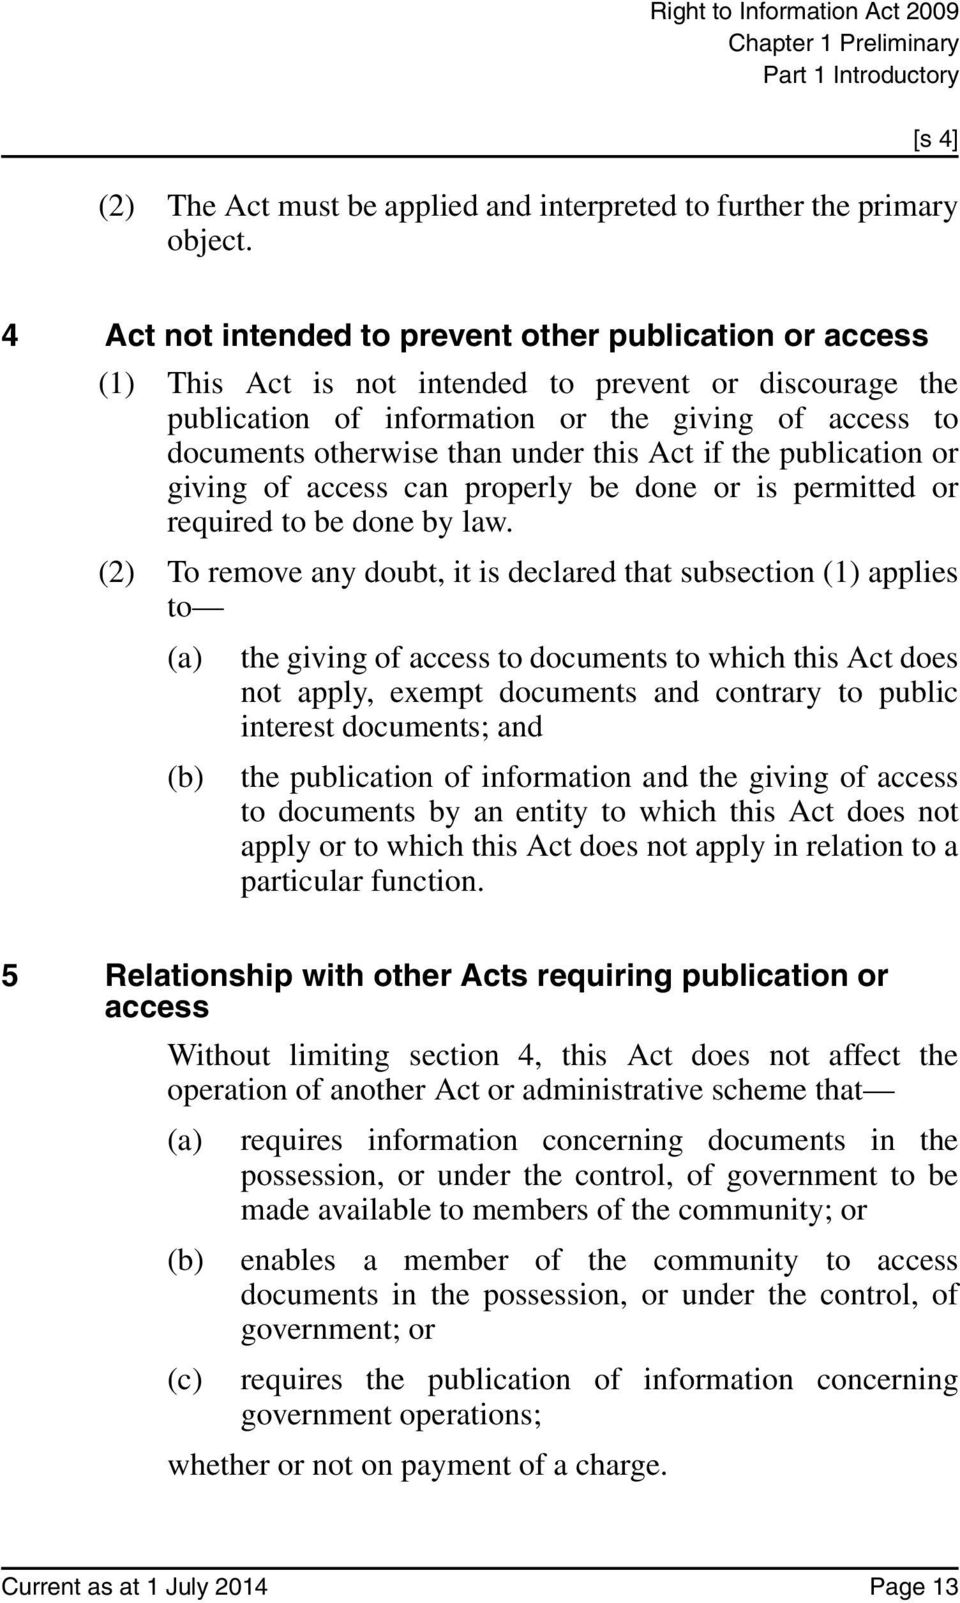 under this Act if the publication or giving of access can properly be done or is permitted or required to be done by law.